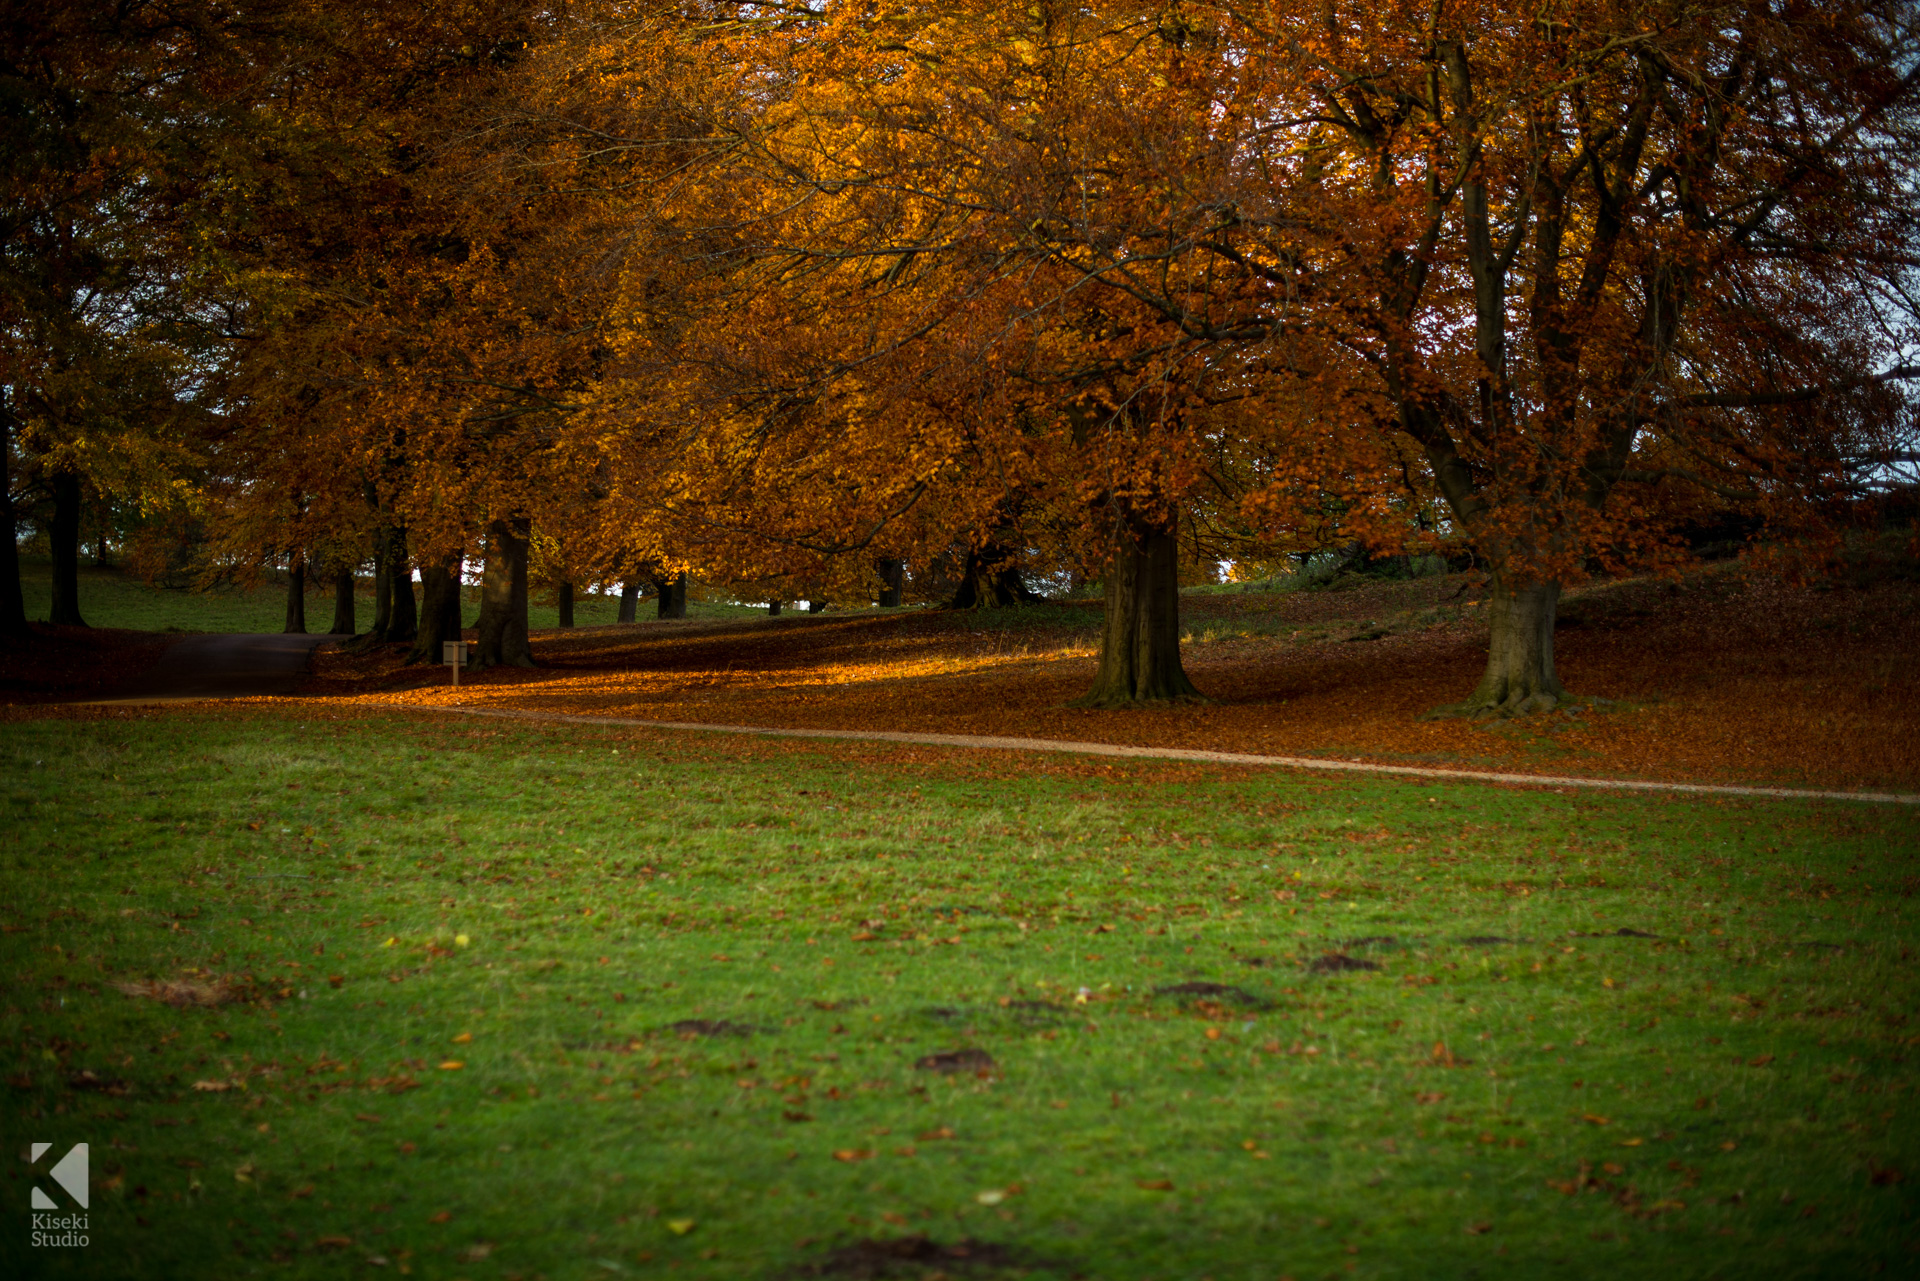 studley-royal-park-leaves-autumnal-orange-moody-trees-shadows-clear-calm-autumn